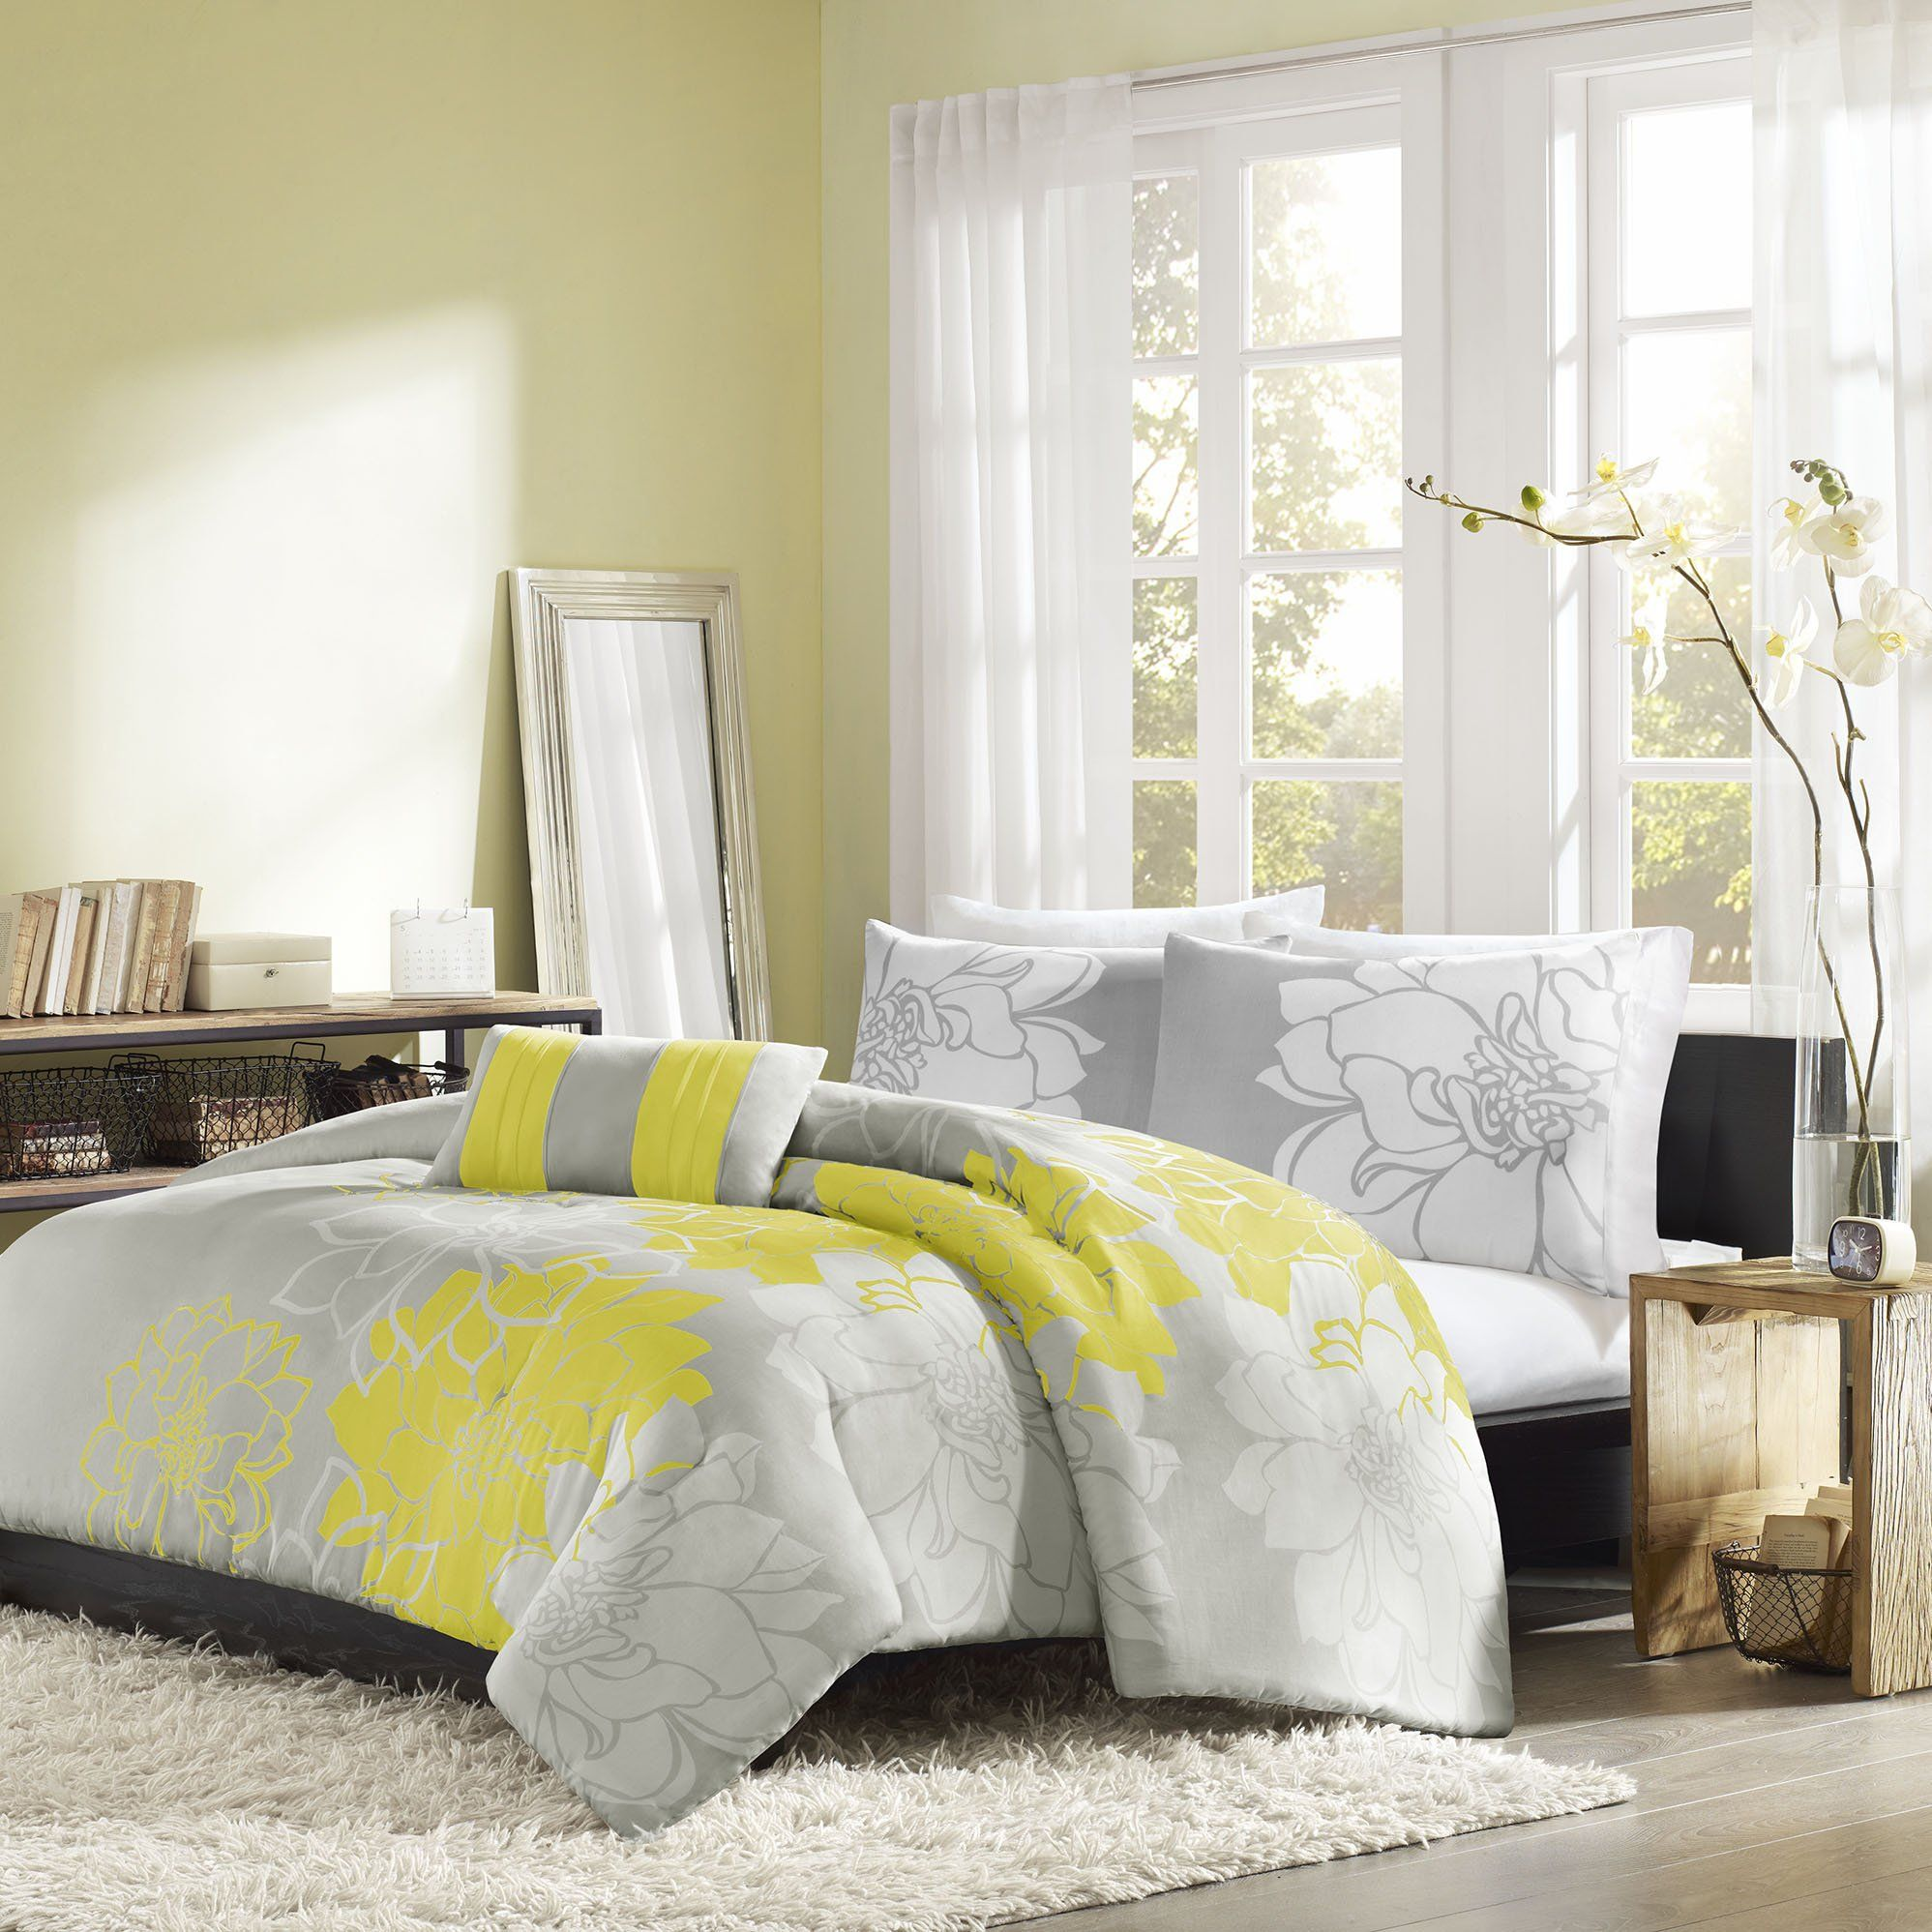 organic covers gray first and king light little inspiration queen twin cheap mustard cover agreeable of rate yellow set in hippo cotton most grey white duvet quilt sets bedding about